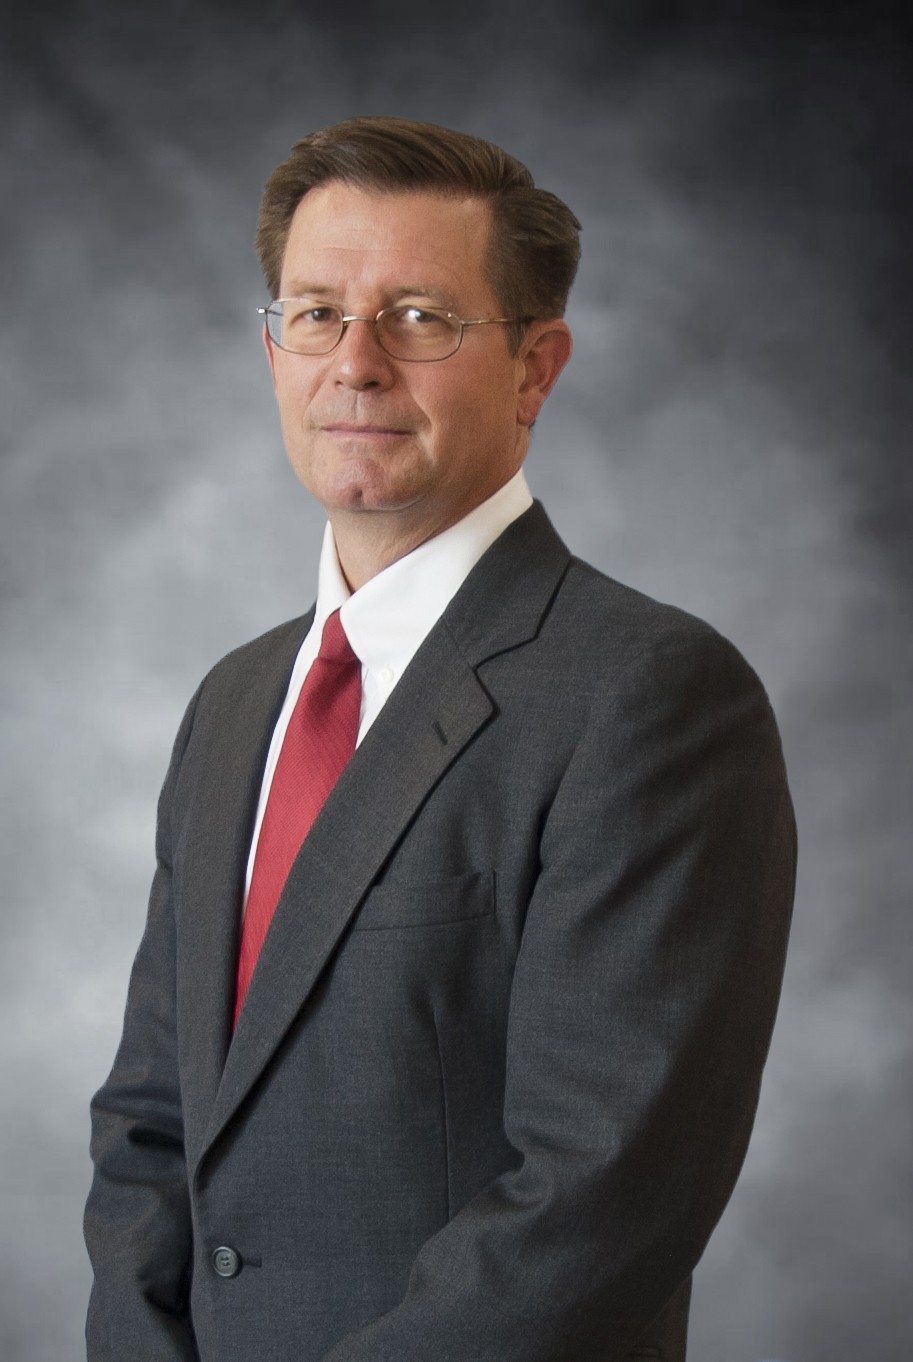 James Peery has been selected as the chief scientist of the Global Security Directorate at Oak Ridge National Laboratory.